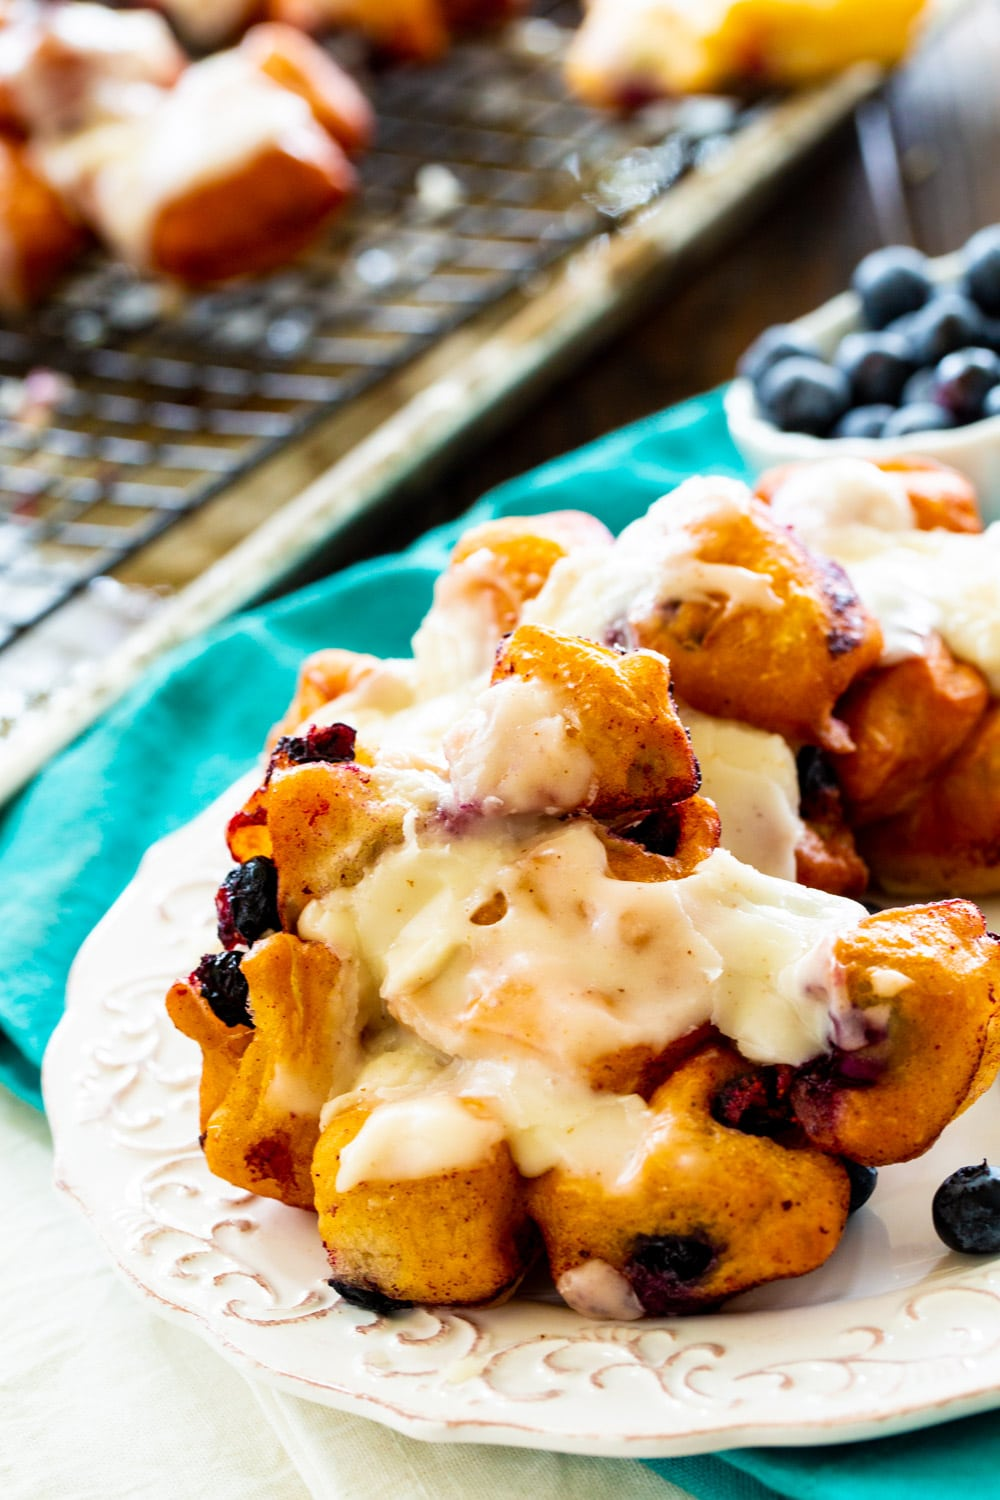 Blueberry Fritters on a plate.